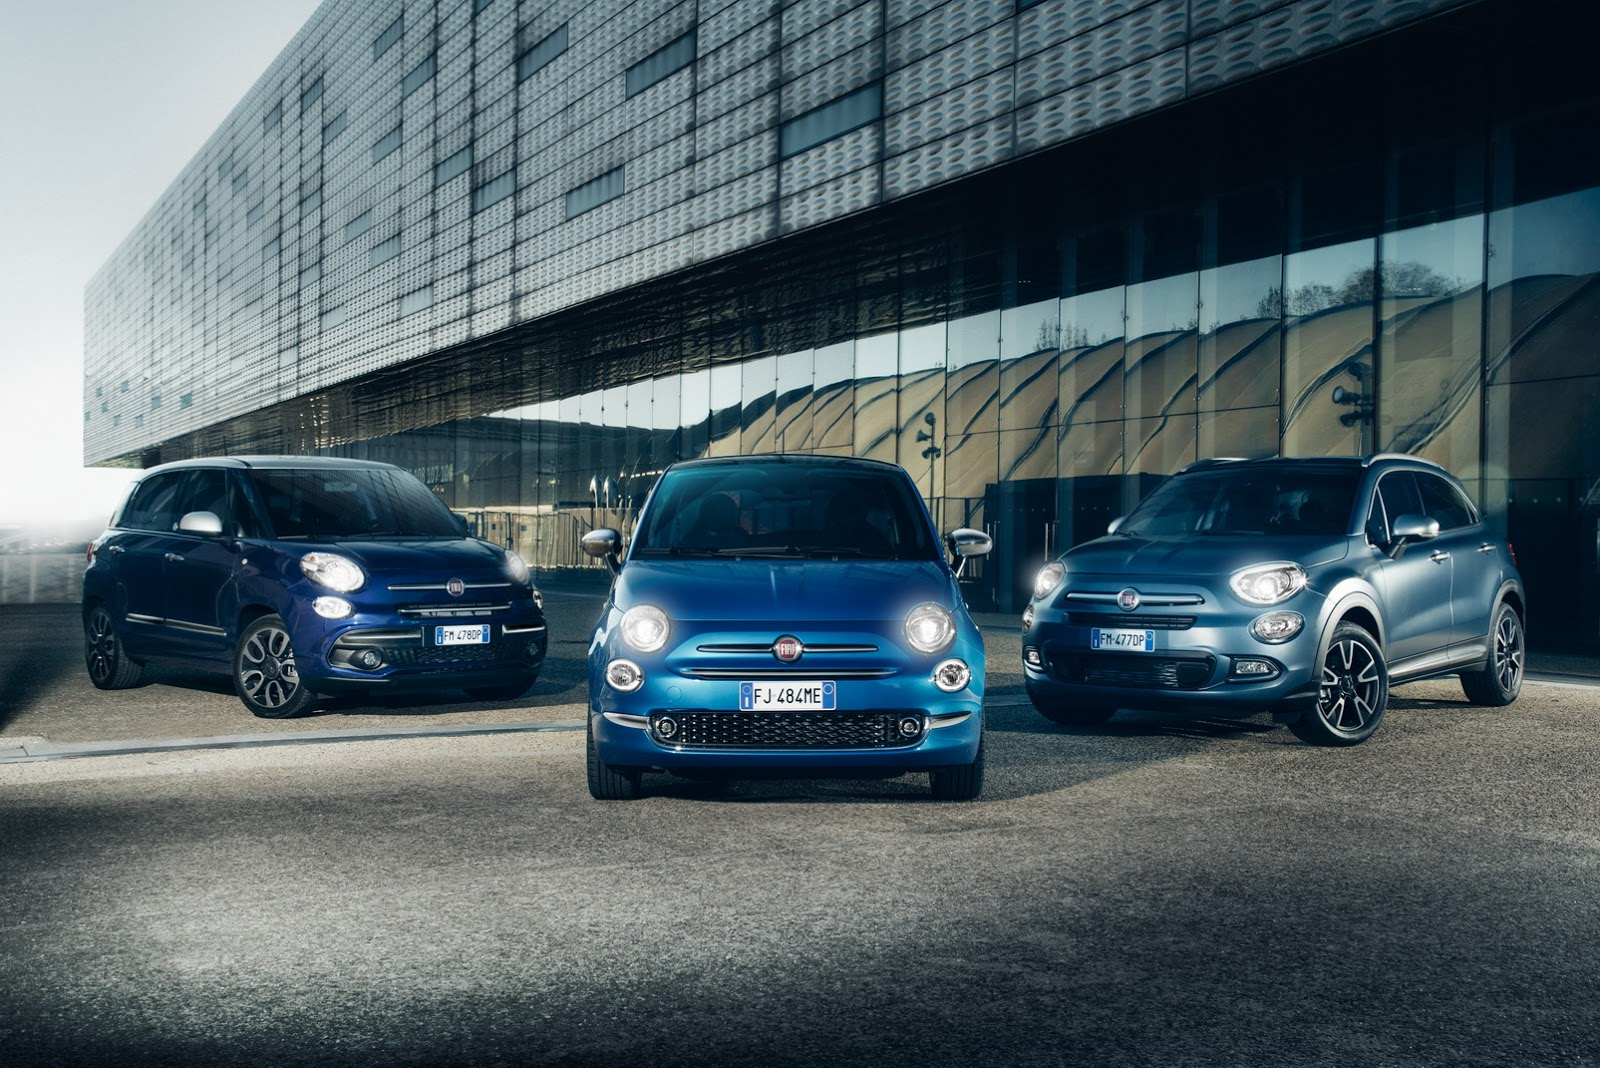 Fiat 500, 500L and 500X Mirror Edition Are More Connected ...